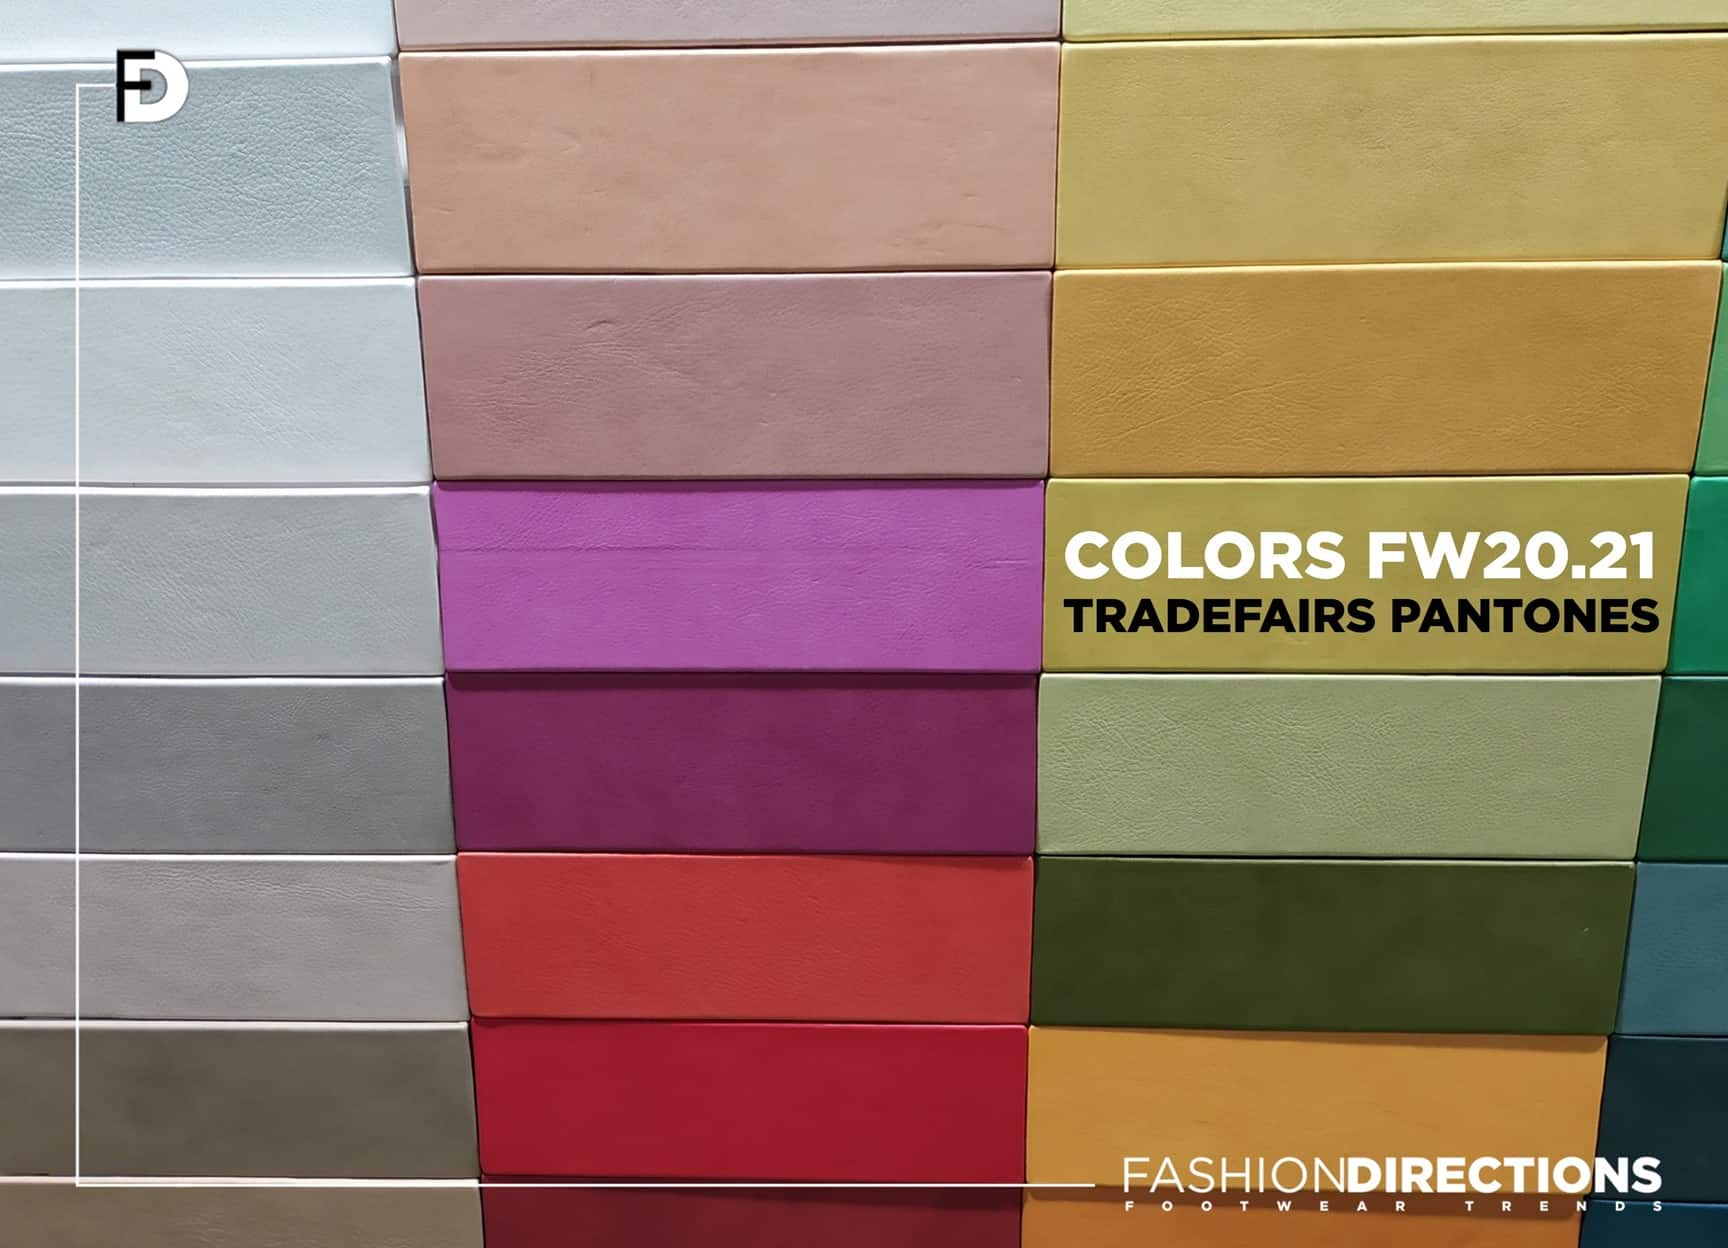 Colors FW20.21 Pantones 1